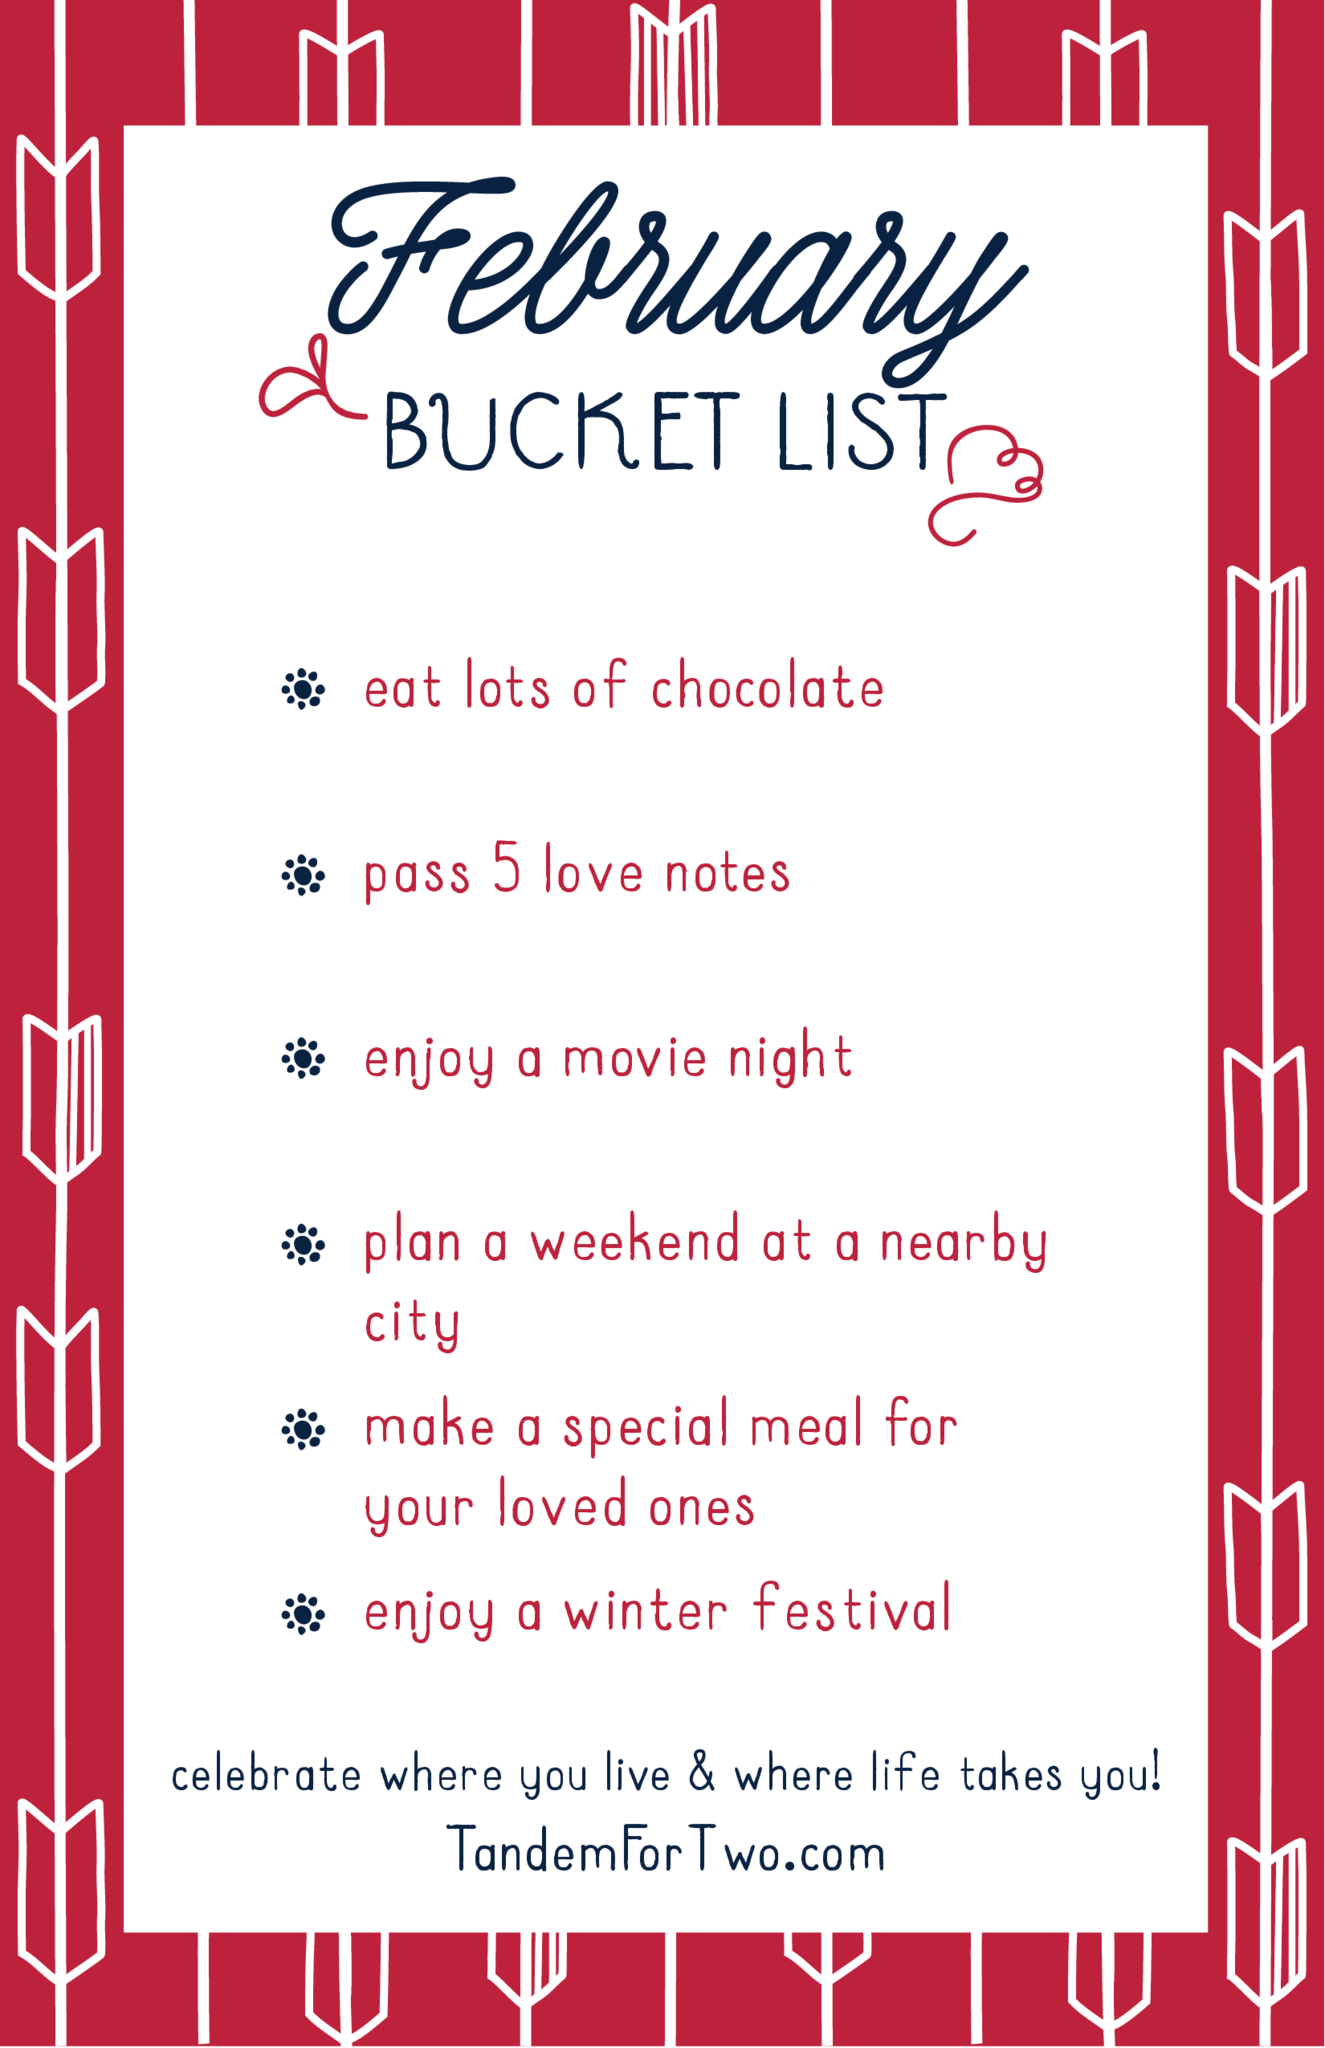 February Bucket List from Tandem For Two